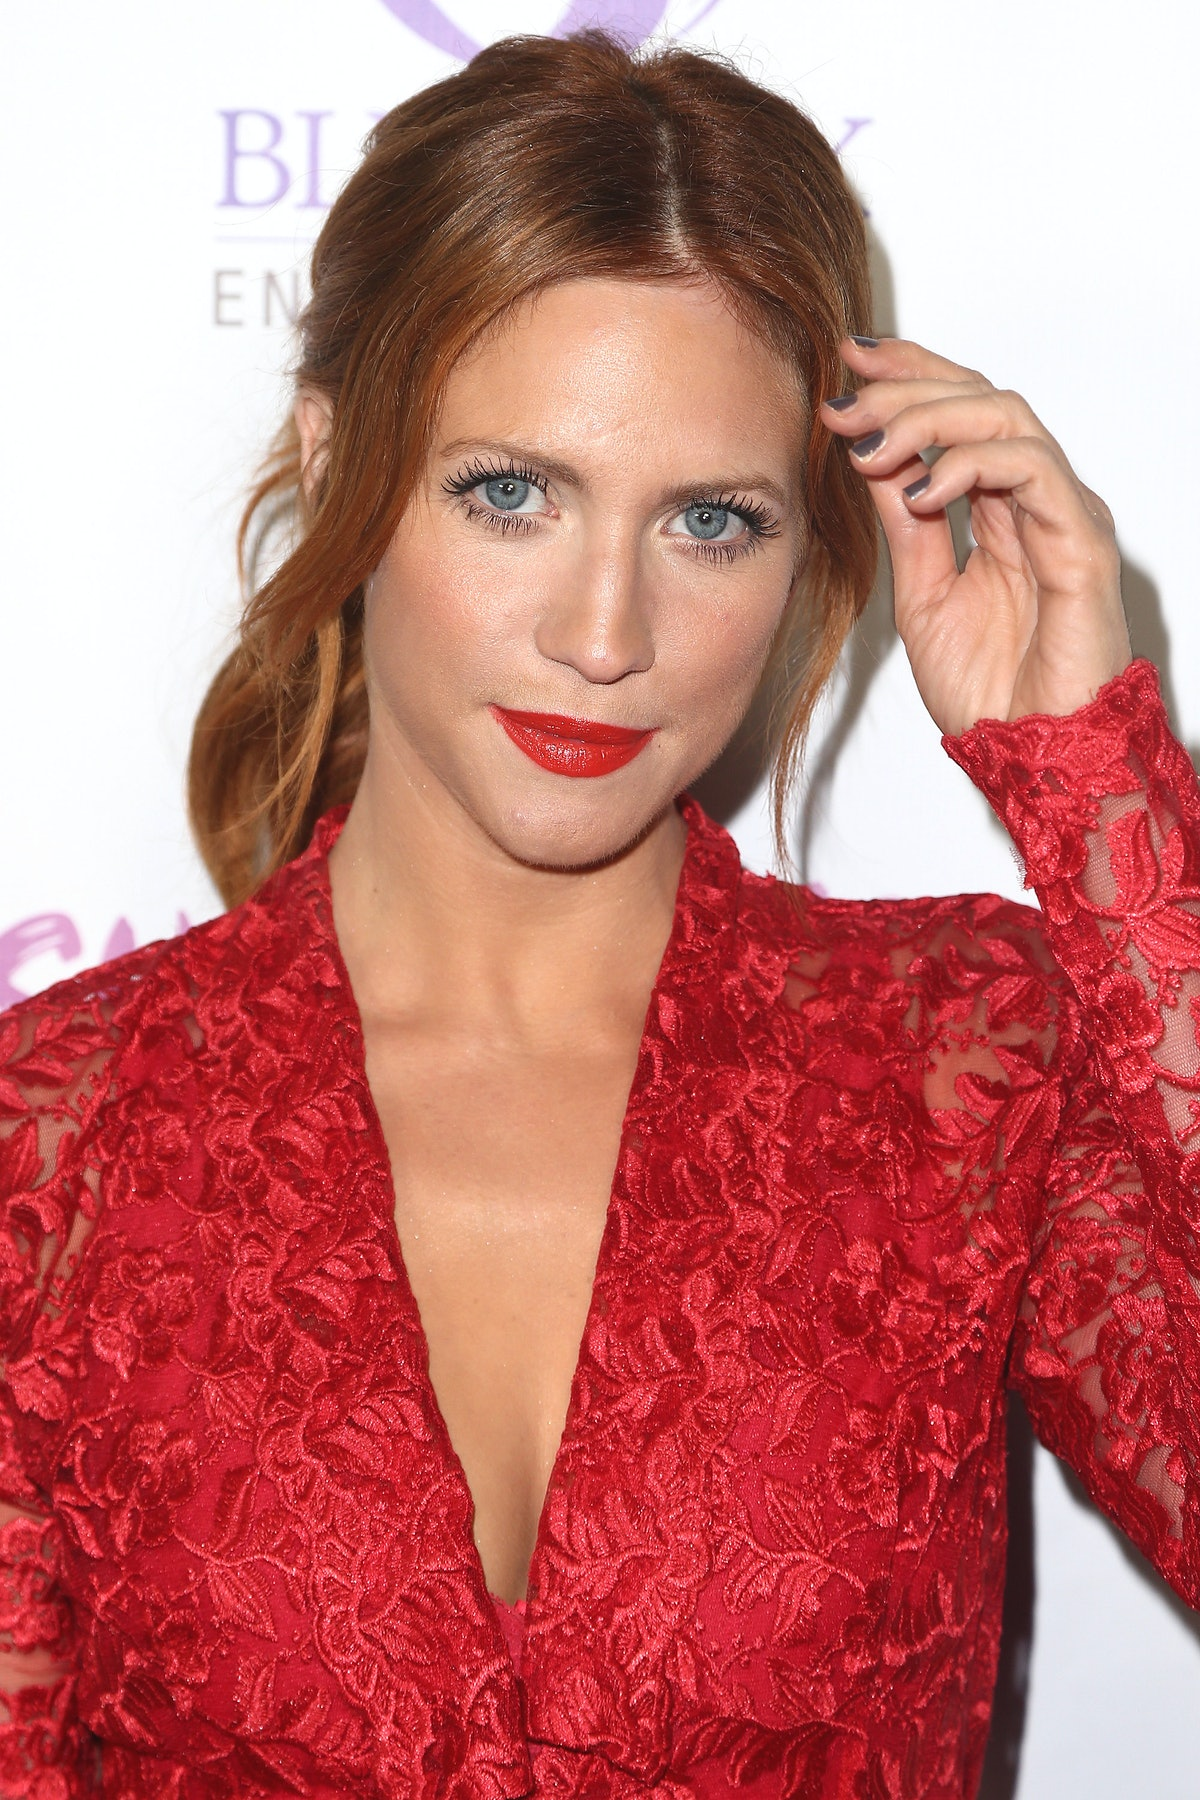 Brittany Snow's Engagement Ring Is The Simple Rock Of Your Wedding Dreams